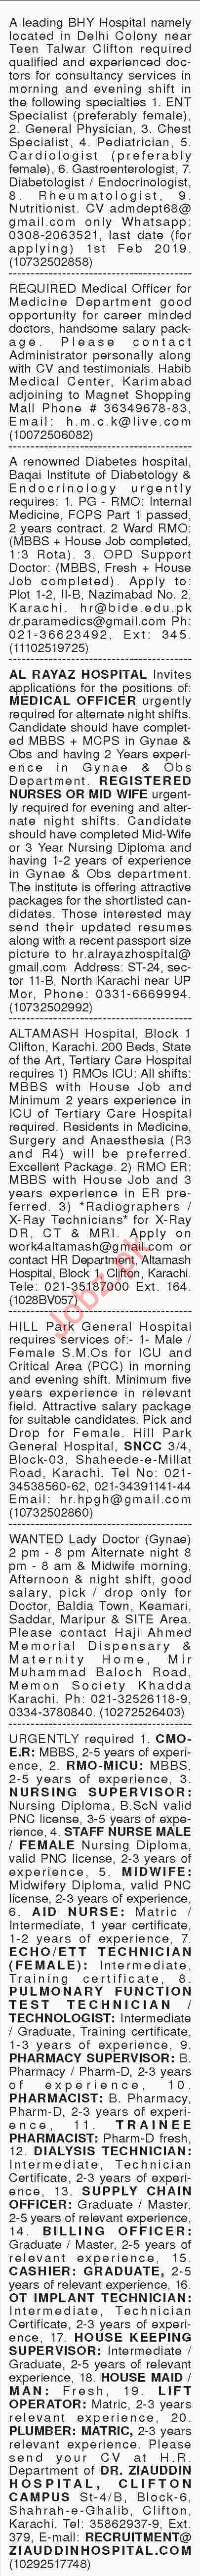 Dawn Sunday Classified Ads 20th Jan 2019 for Medical Staff